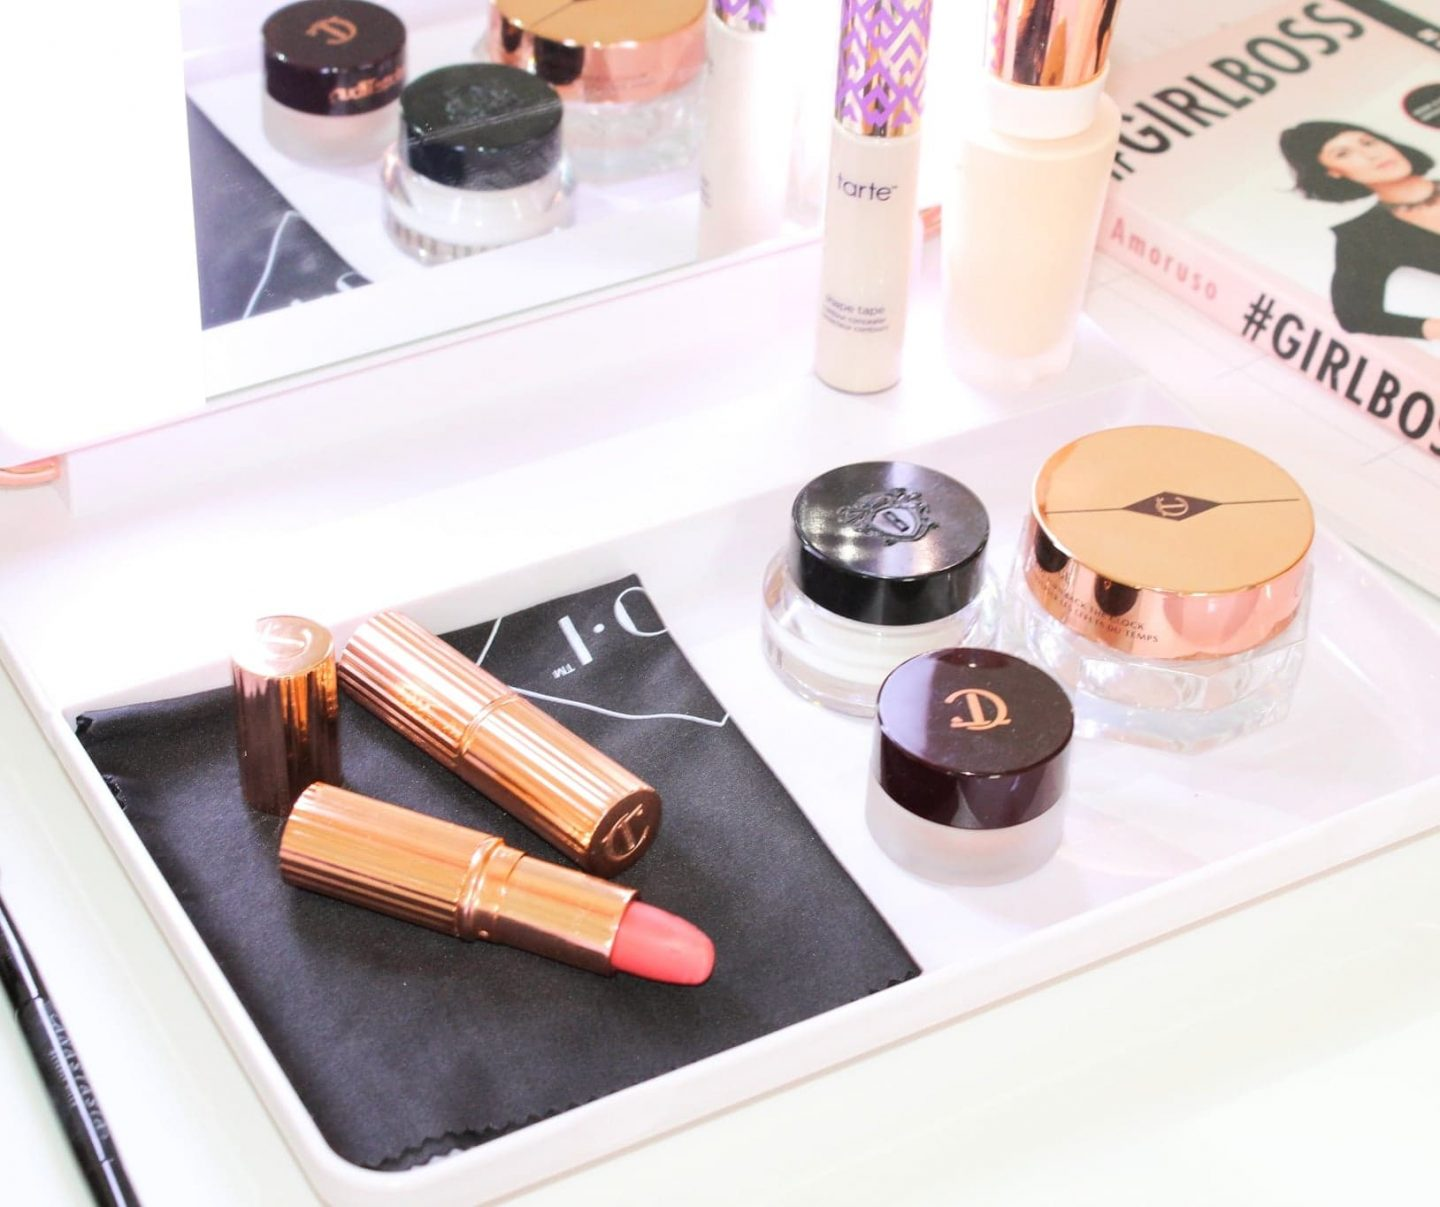 Perfect Makeup Every Time with the Spotlite HDDiamond 2.0 by Just Own It